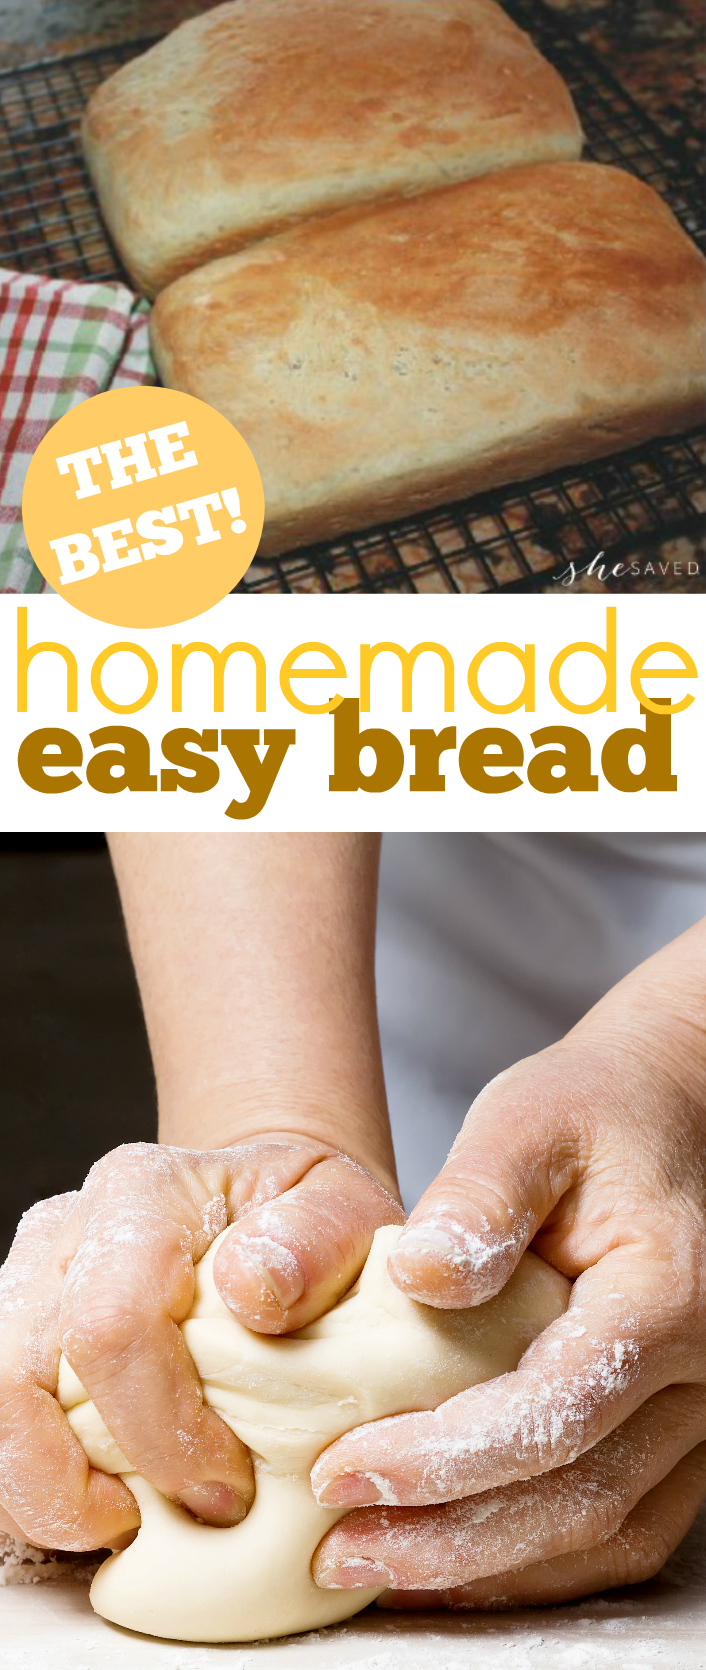 The very best homemade bread recipe